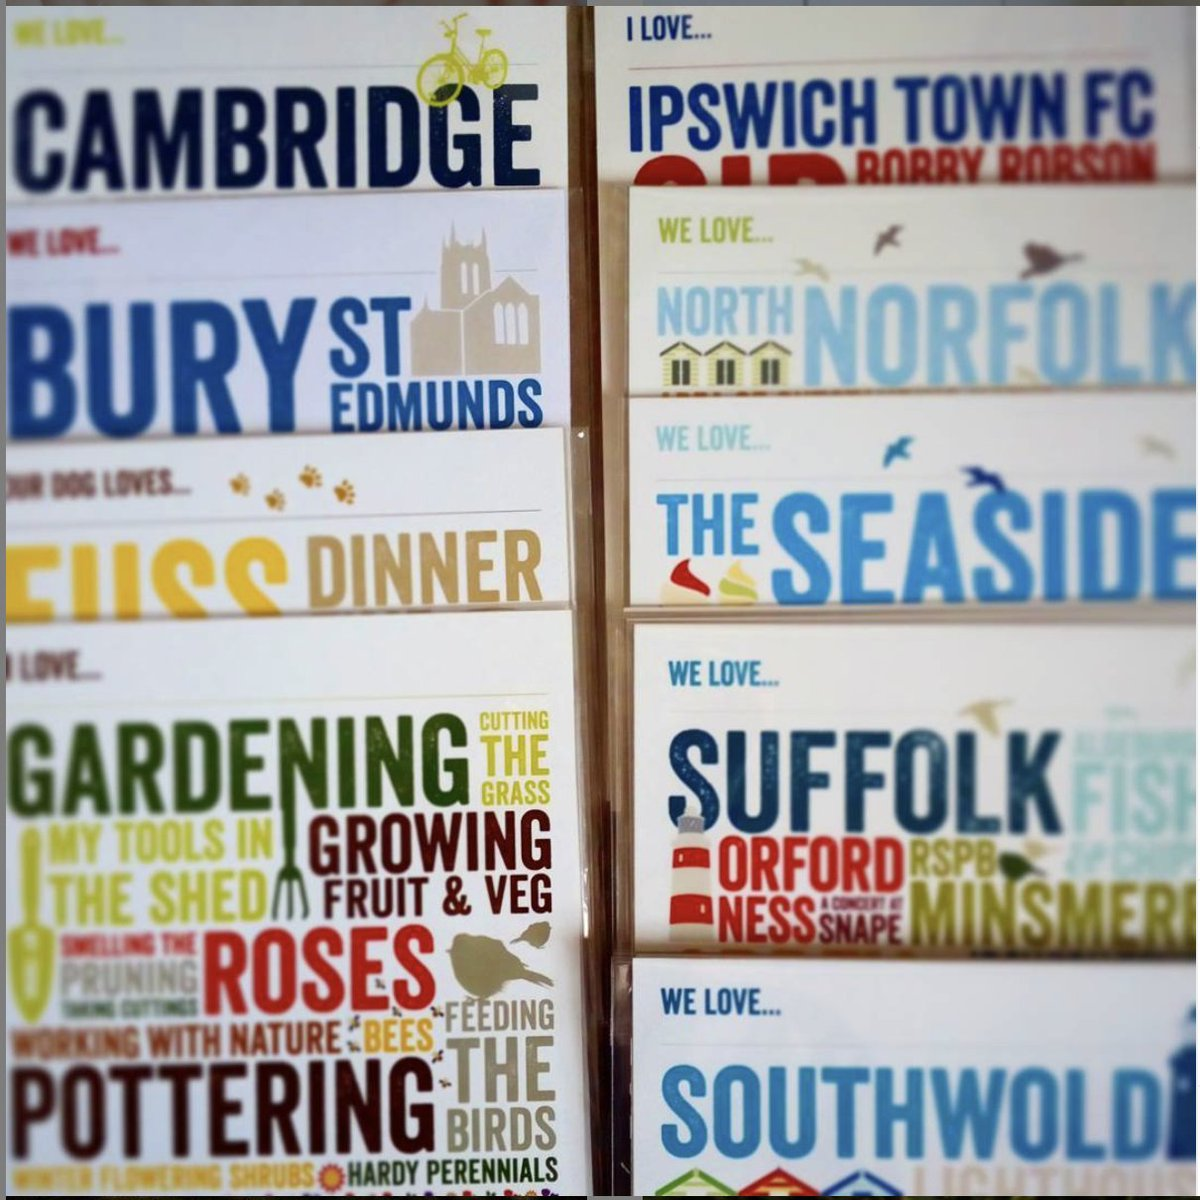 Hi @HandmadeHour #handmadehoue hope you're all well. We make beautiful #typographic #posters of #places and #hobbies making great #gifts #giftideas for #birthdays and #christmas at https://t.co/NG6ZFBWL8I https://t.co/CVT3aKfjyX